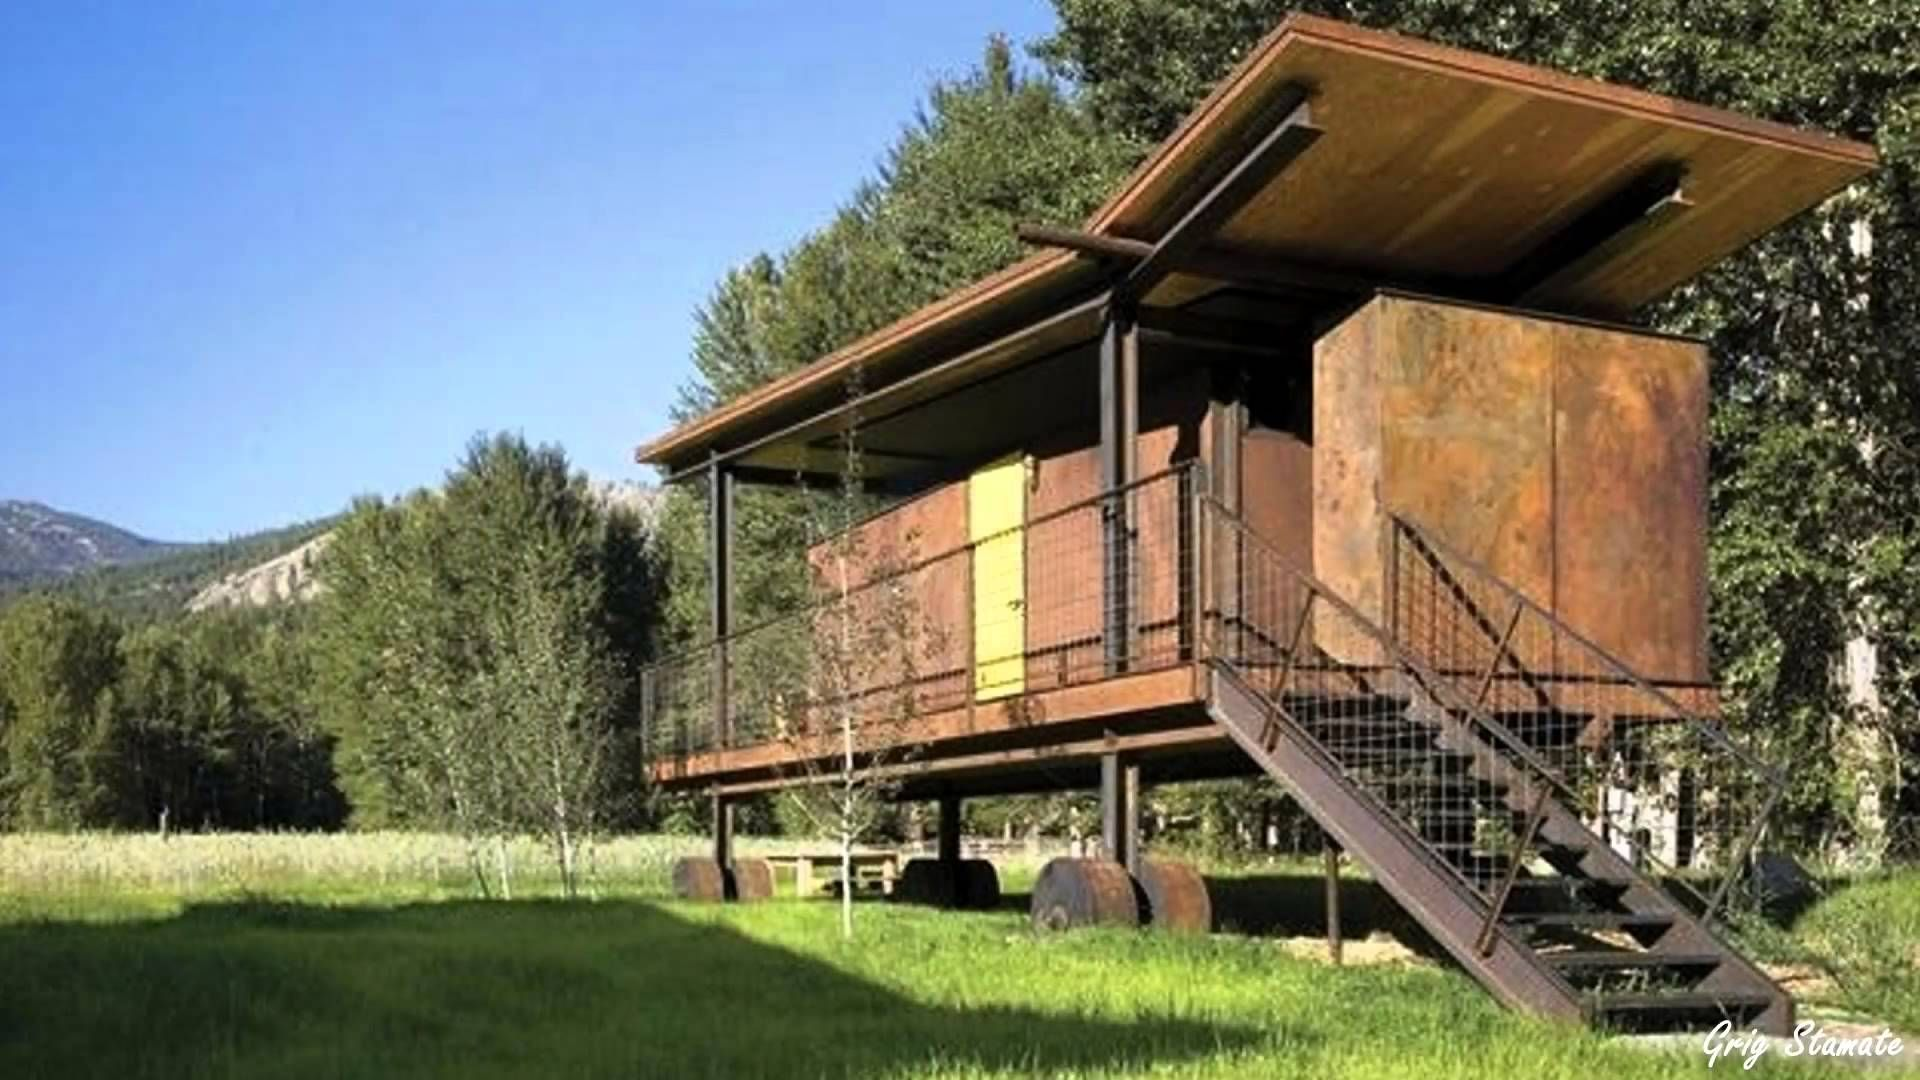 Best Kitchen Gallery: Modern Shipping Container Cabins Anywhere Survival Pinterest of Carolina Beach Container Home on rachelxblog.com